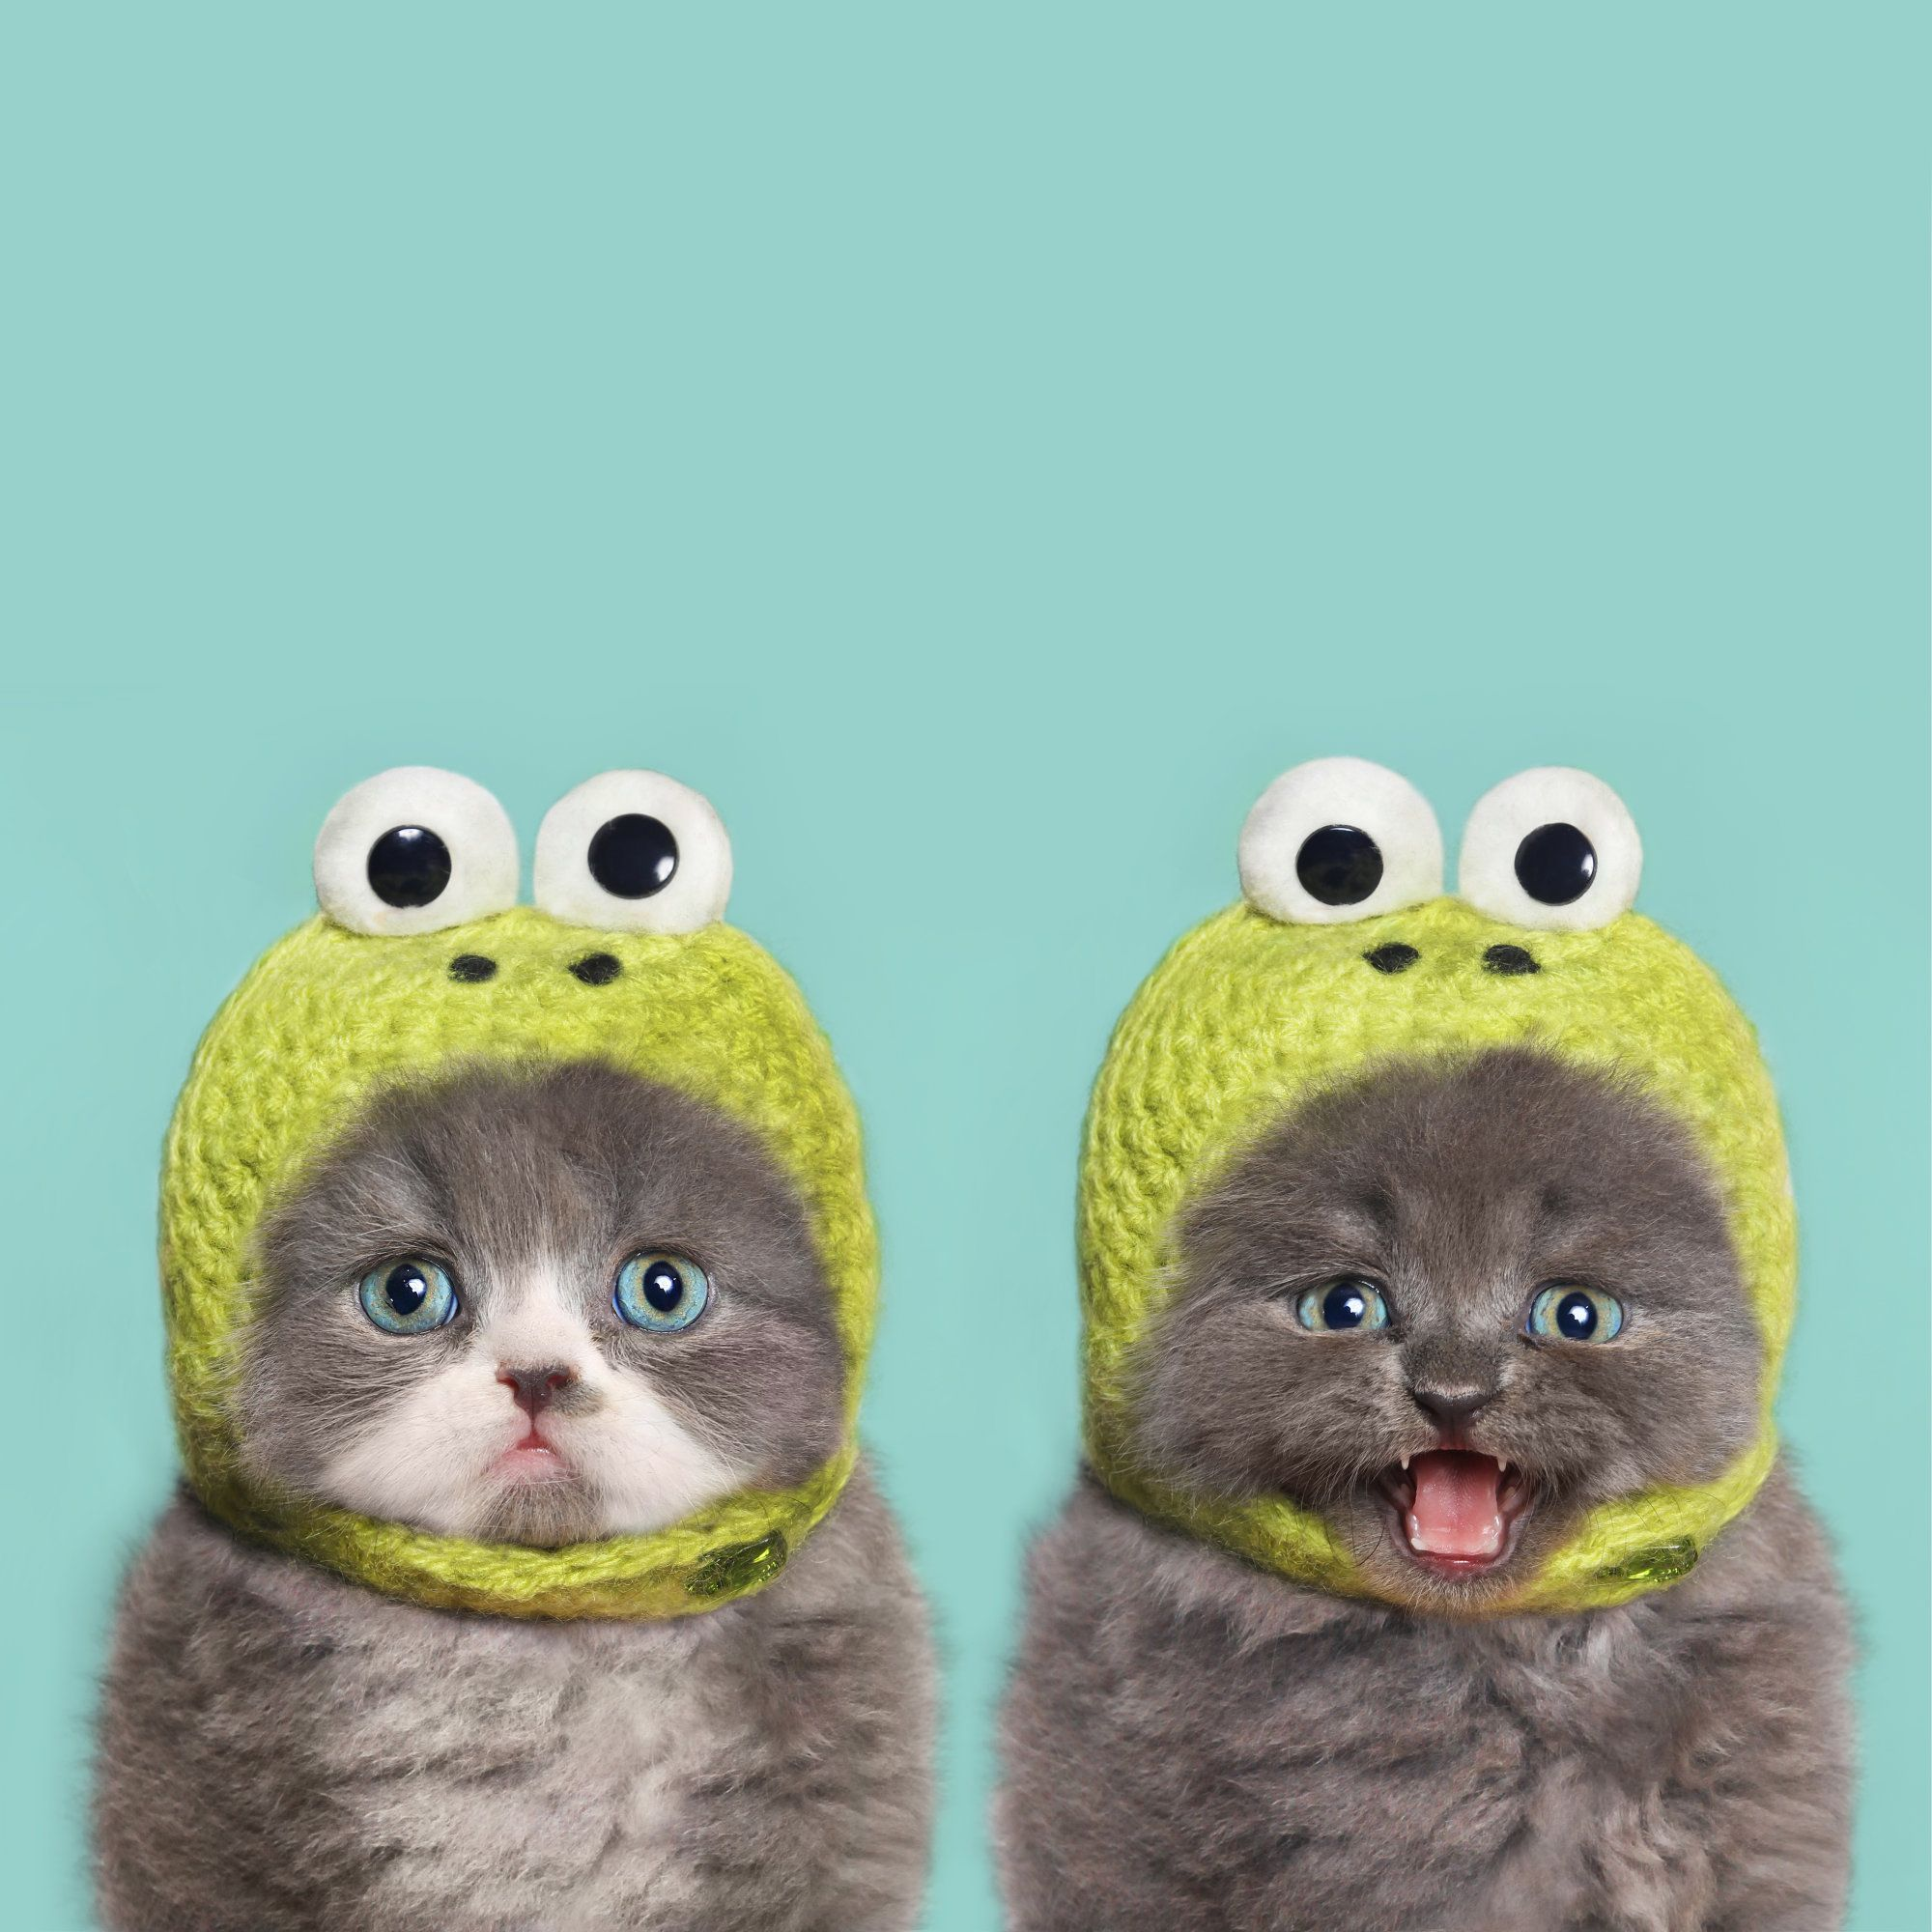 Such adorable little faces, but they would be much happier without the hats, yes?